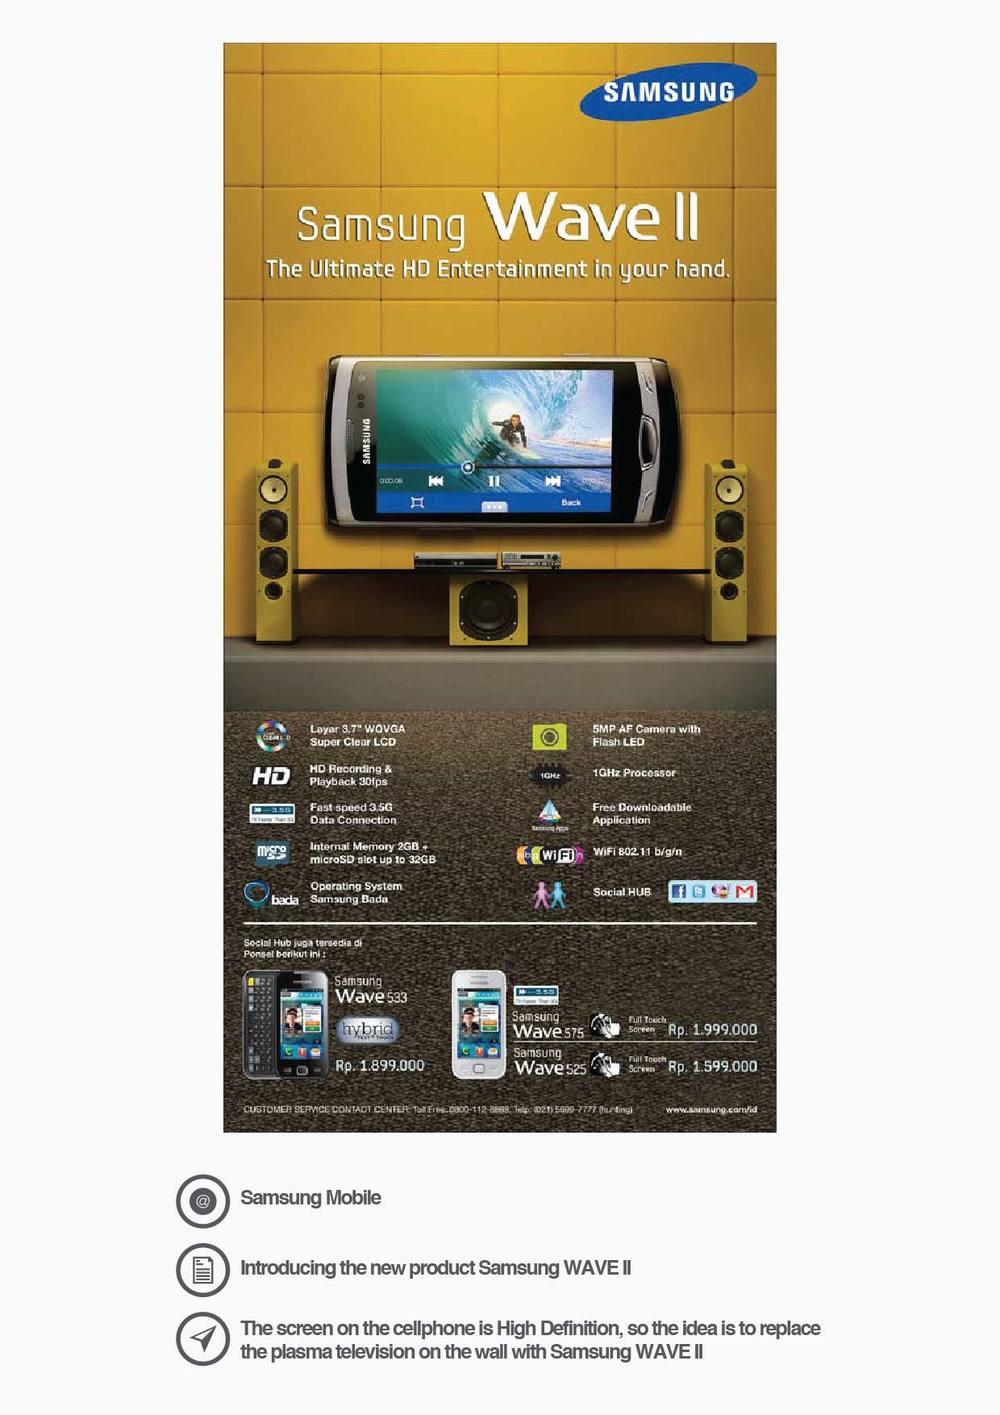 Samsung Mobile Introducing the new product Samsung WAVE II